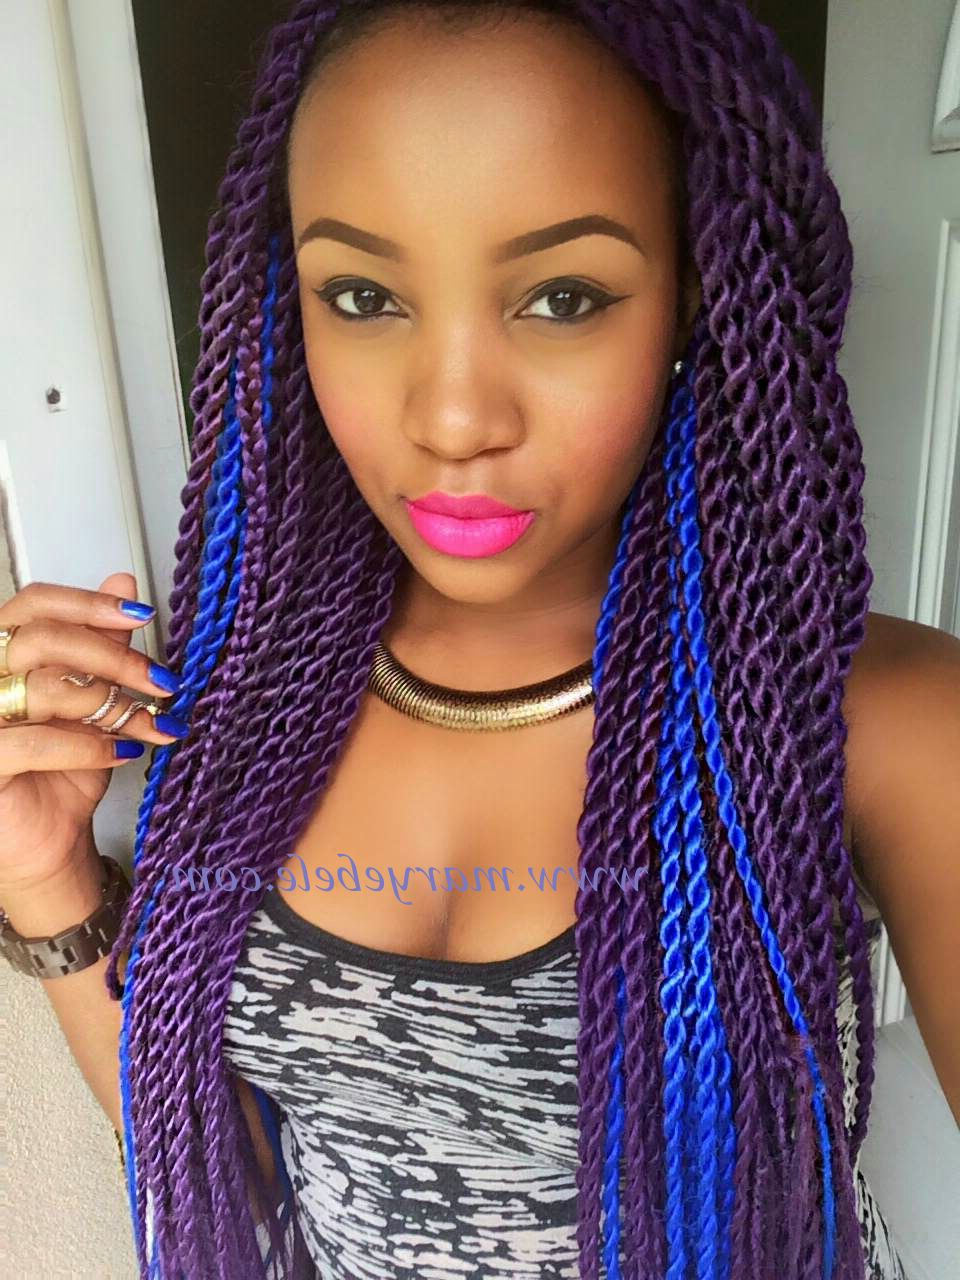 Famous Pastel Colored Updo Hairstyles With Rope Twist Pertaining To Purple & Blue Braids. Peace, Love & Unicorns (View 10 of 20)